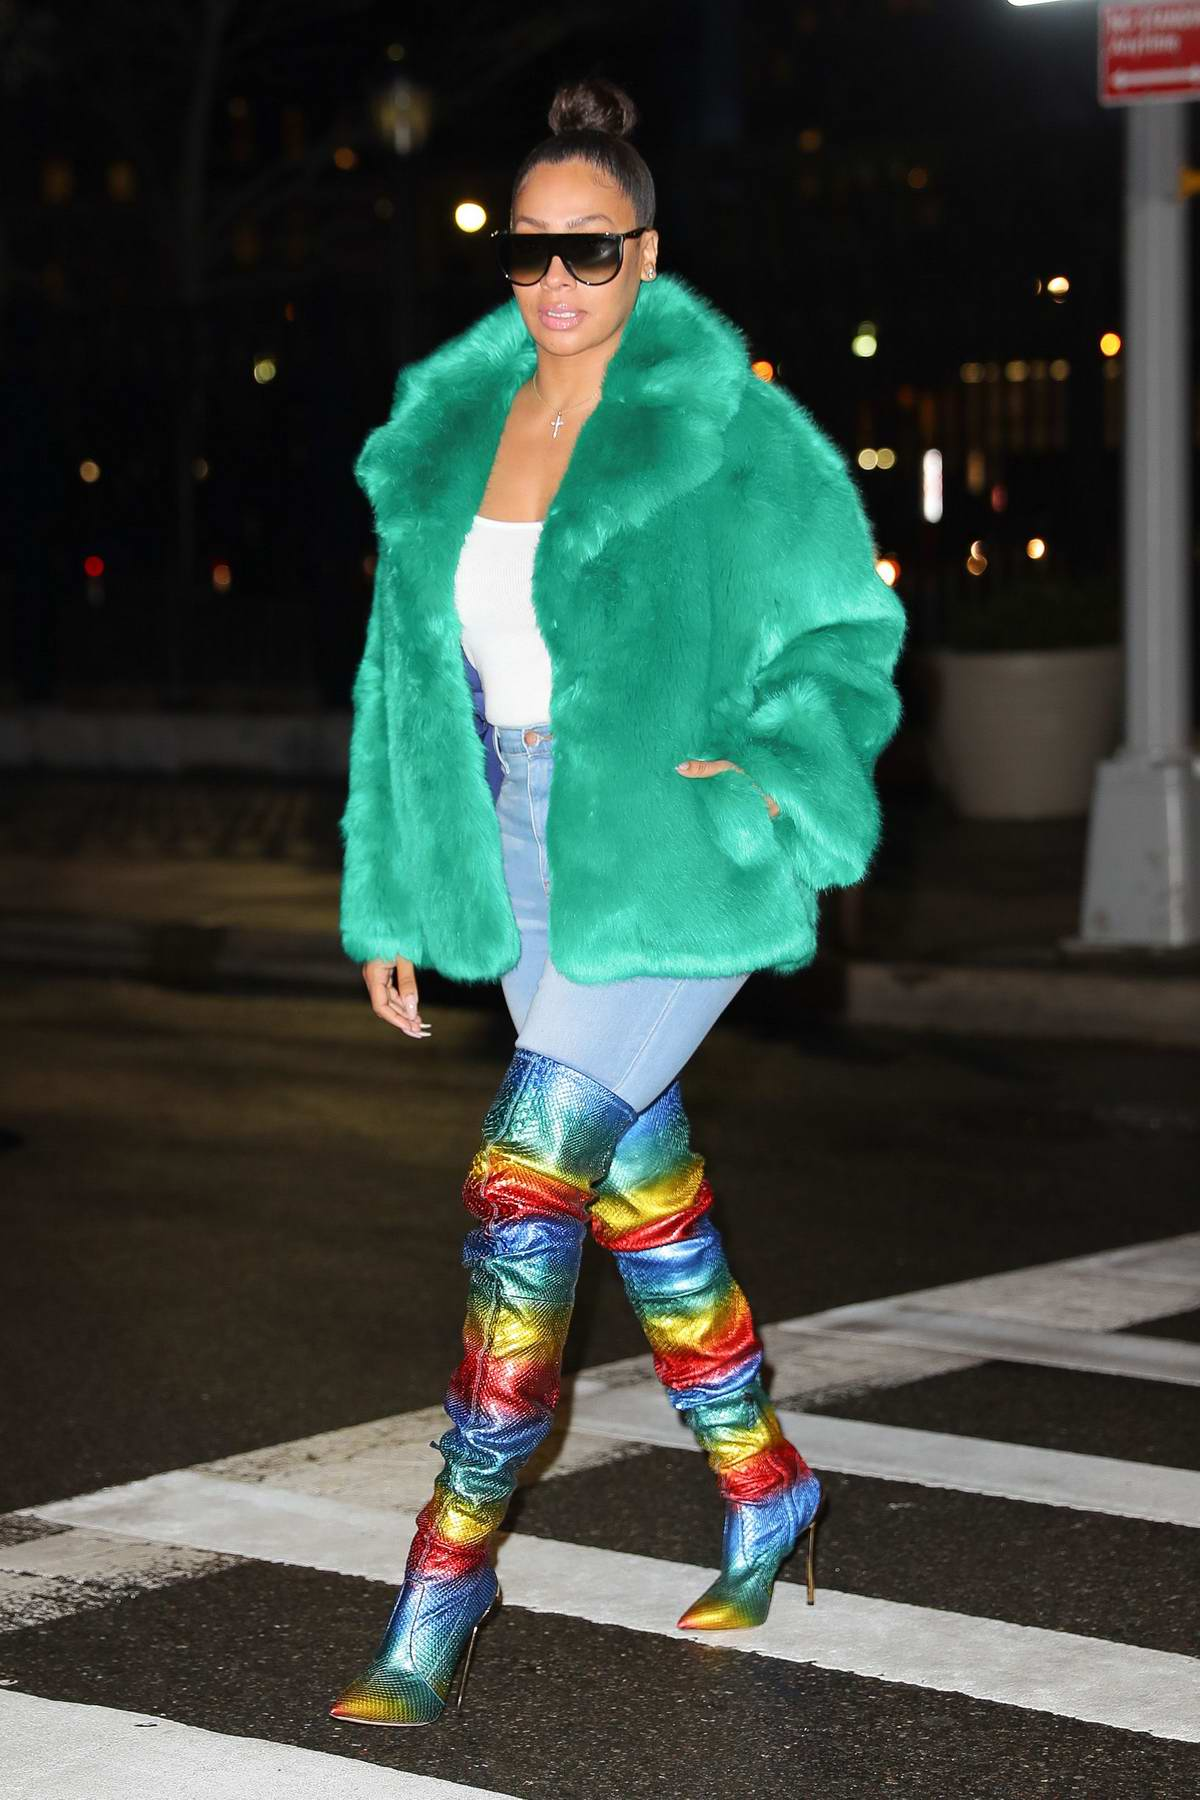 La La Anthony wore a faux fur collared jacket with a rainbow high knee boots while out in New York City